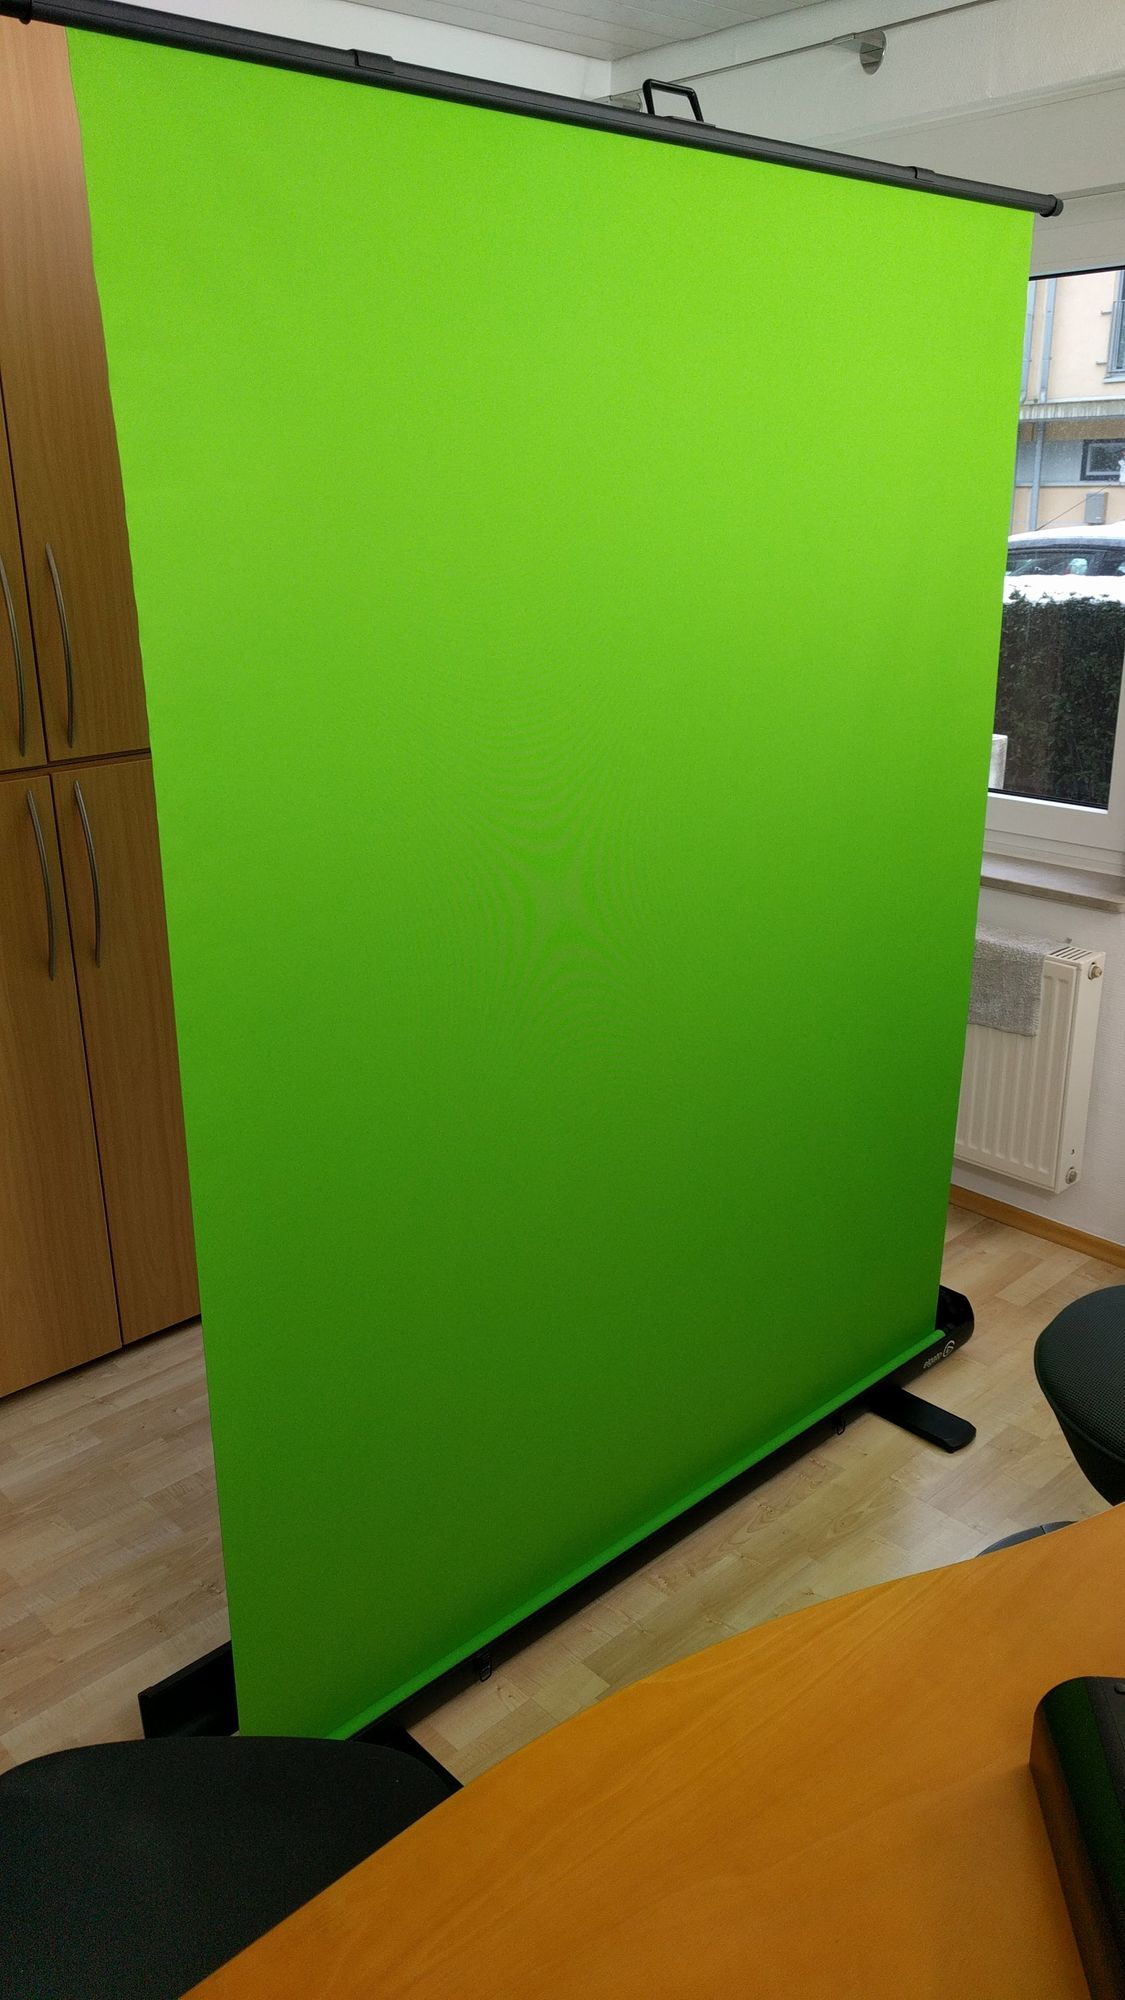 Greenscreen - vorne.jpg